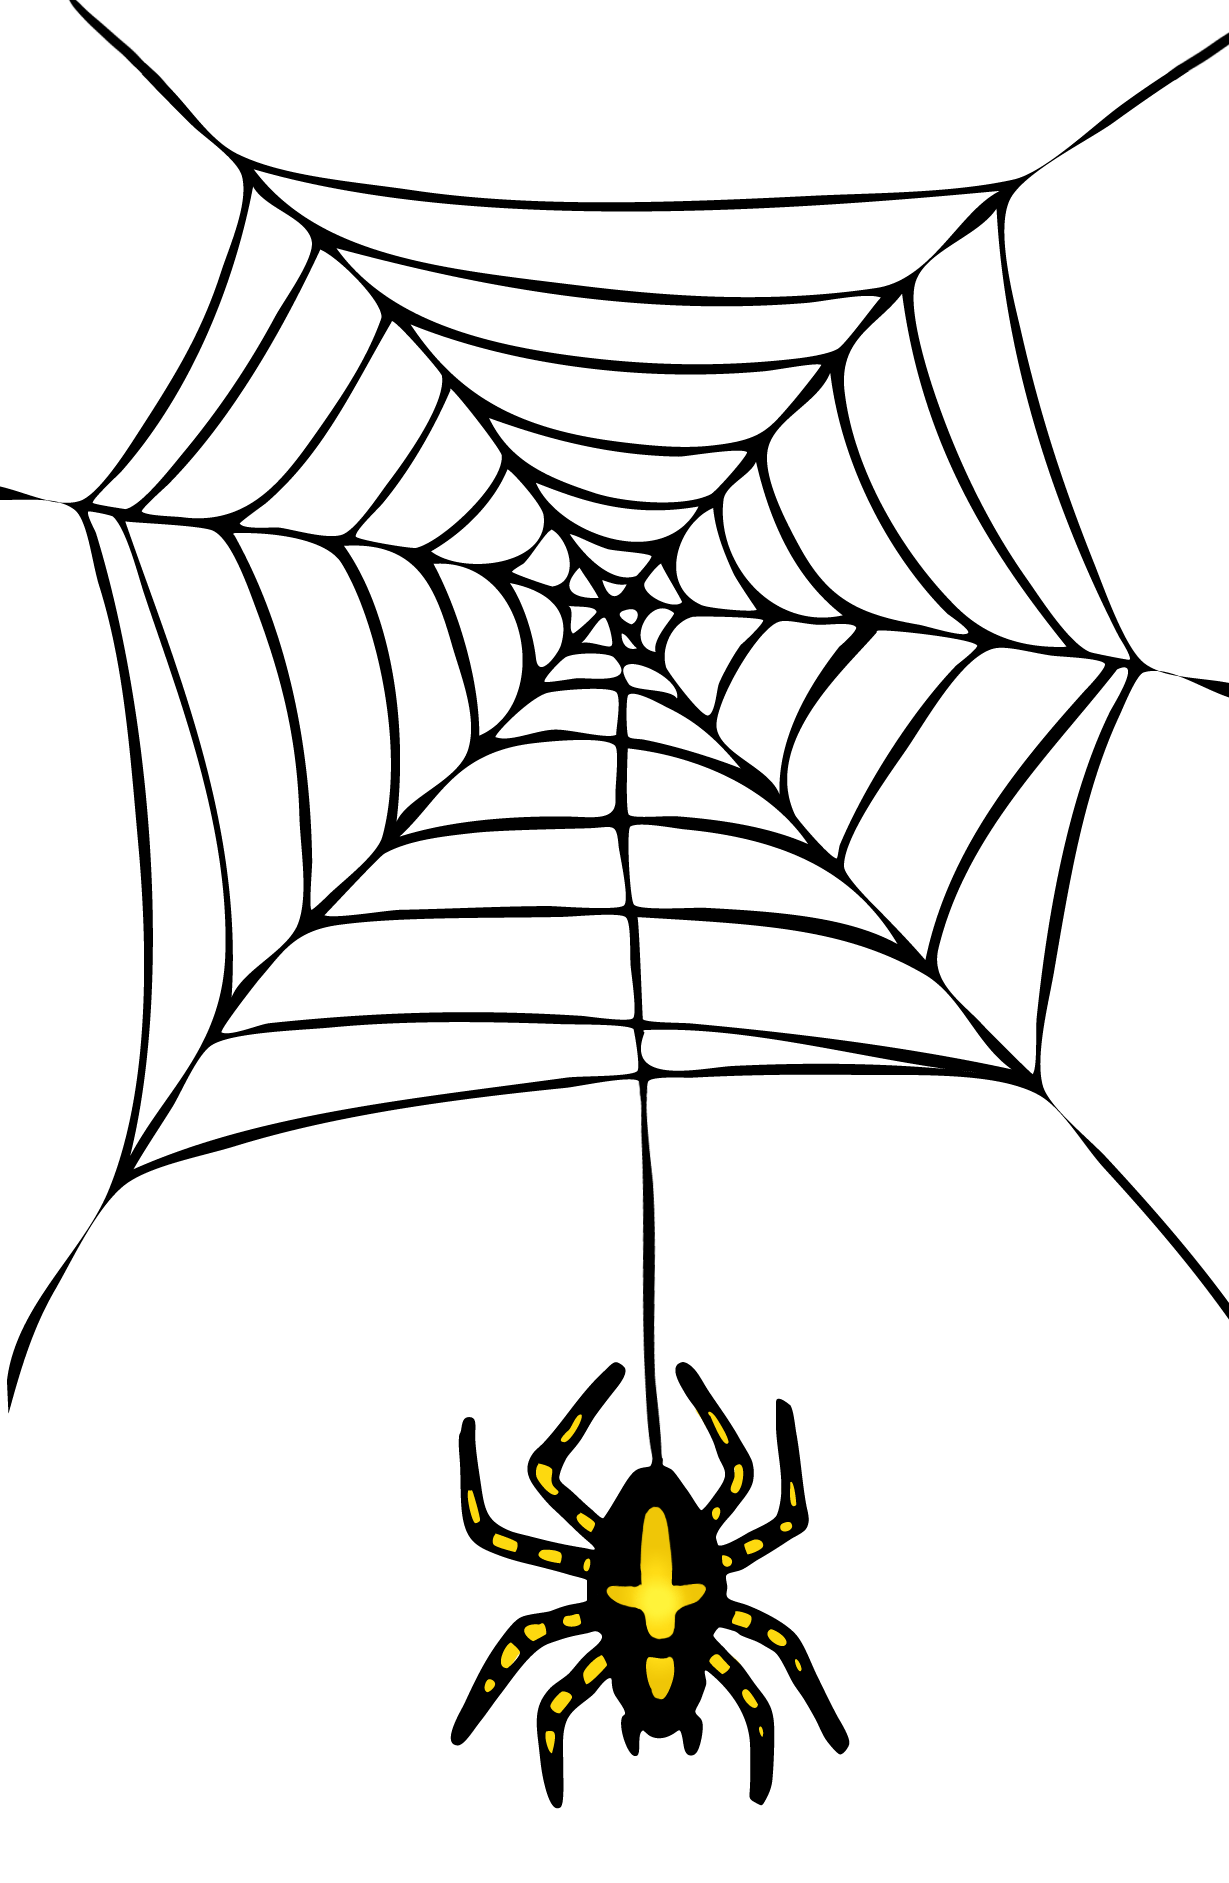 Images For Halloween Cobwebs Clipart